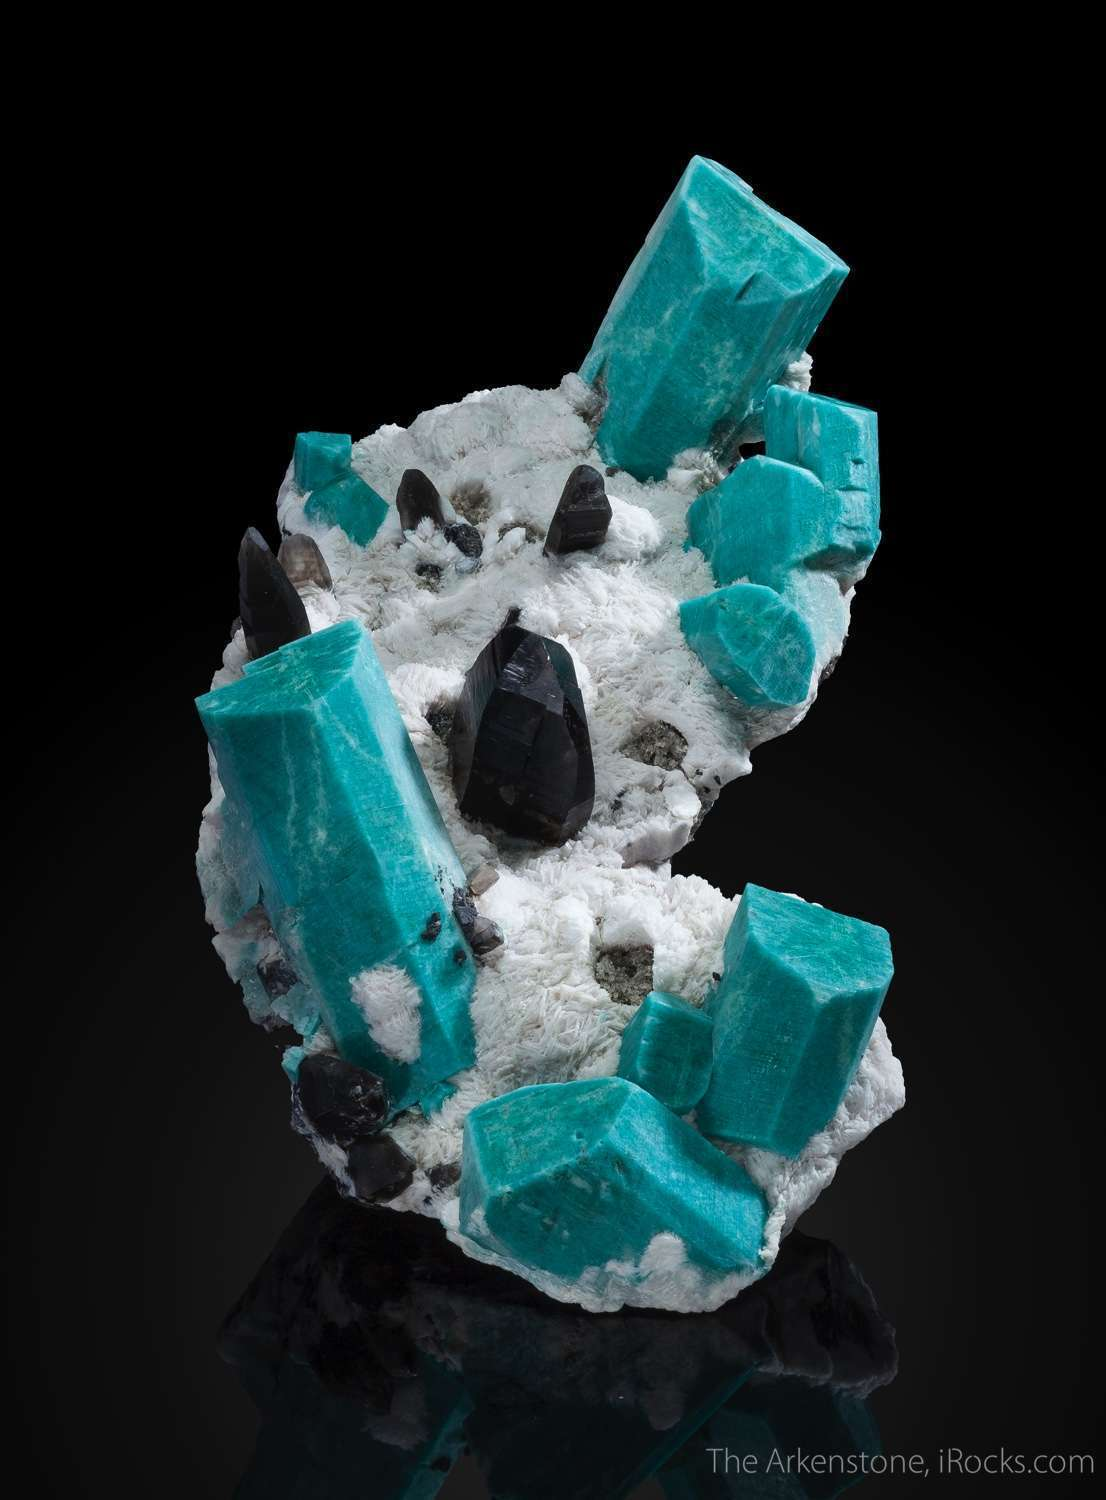 This dramatic large cabinet piece mind future icon American minerals